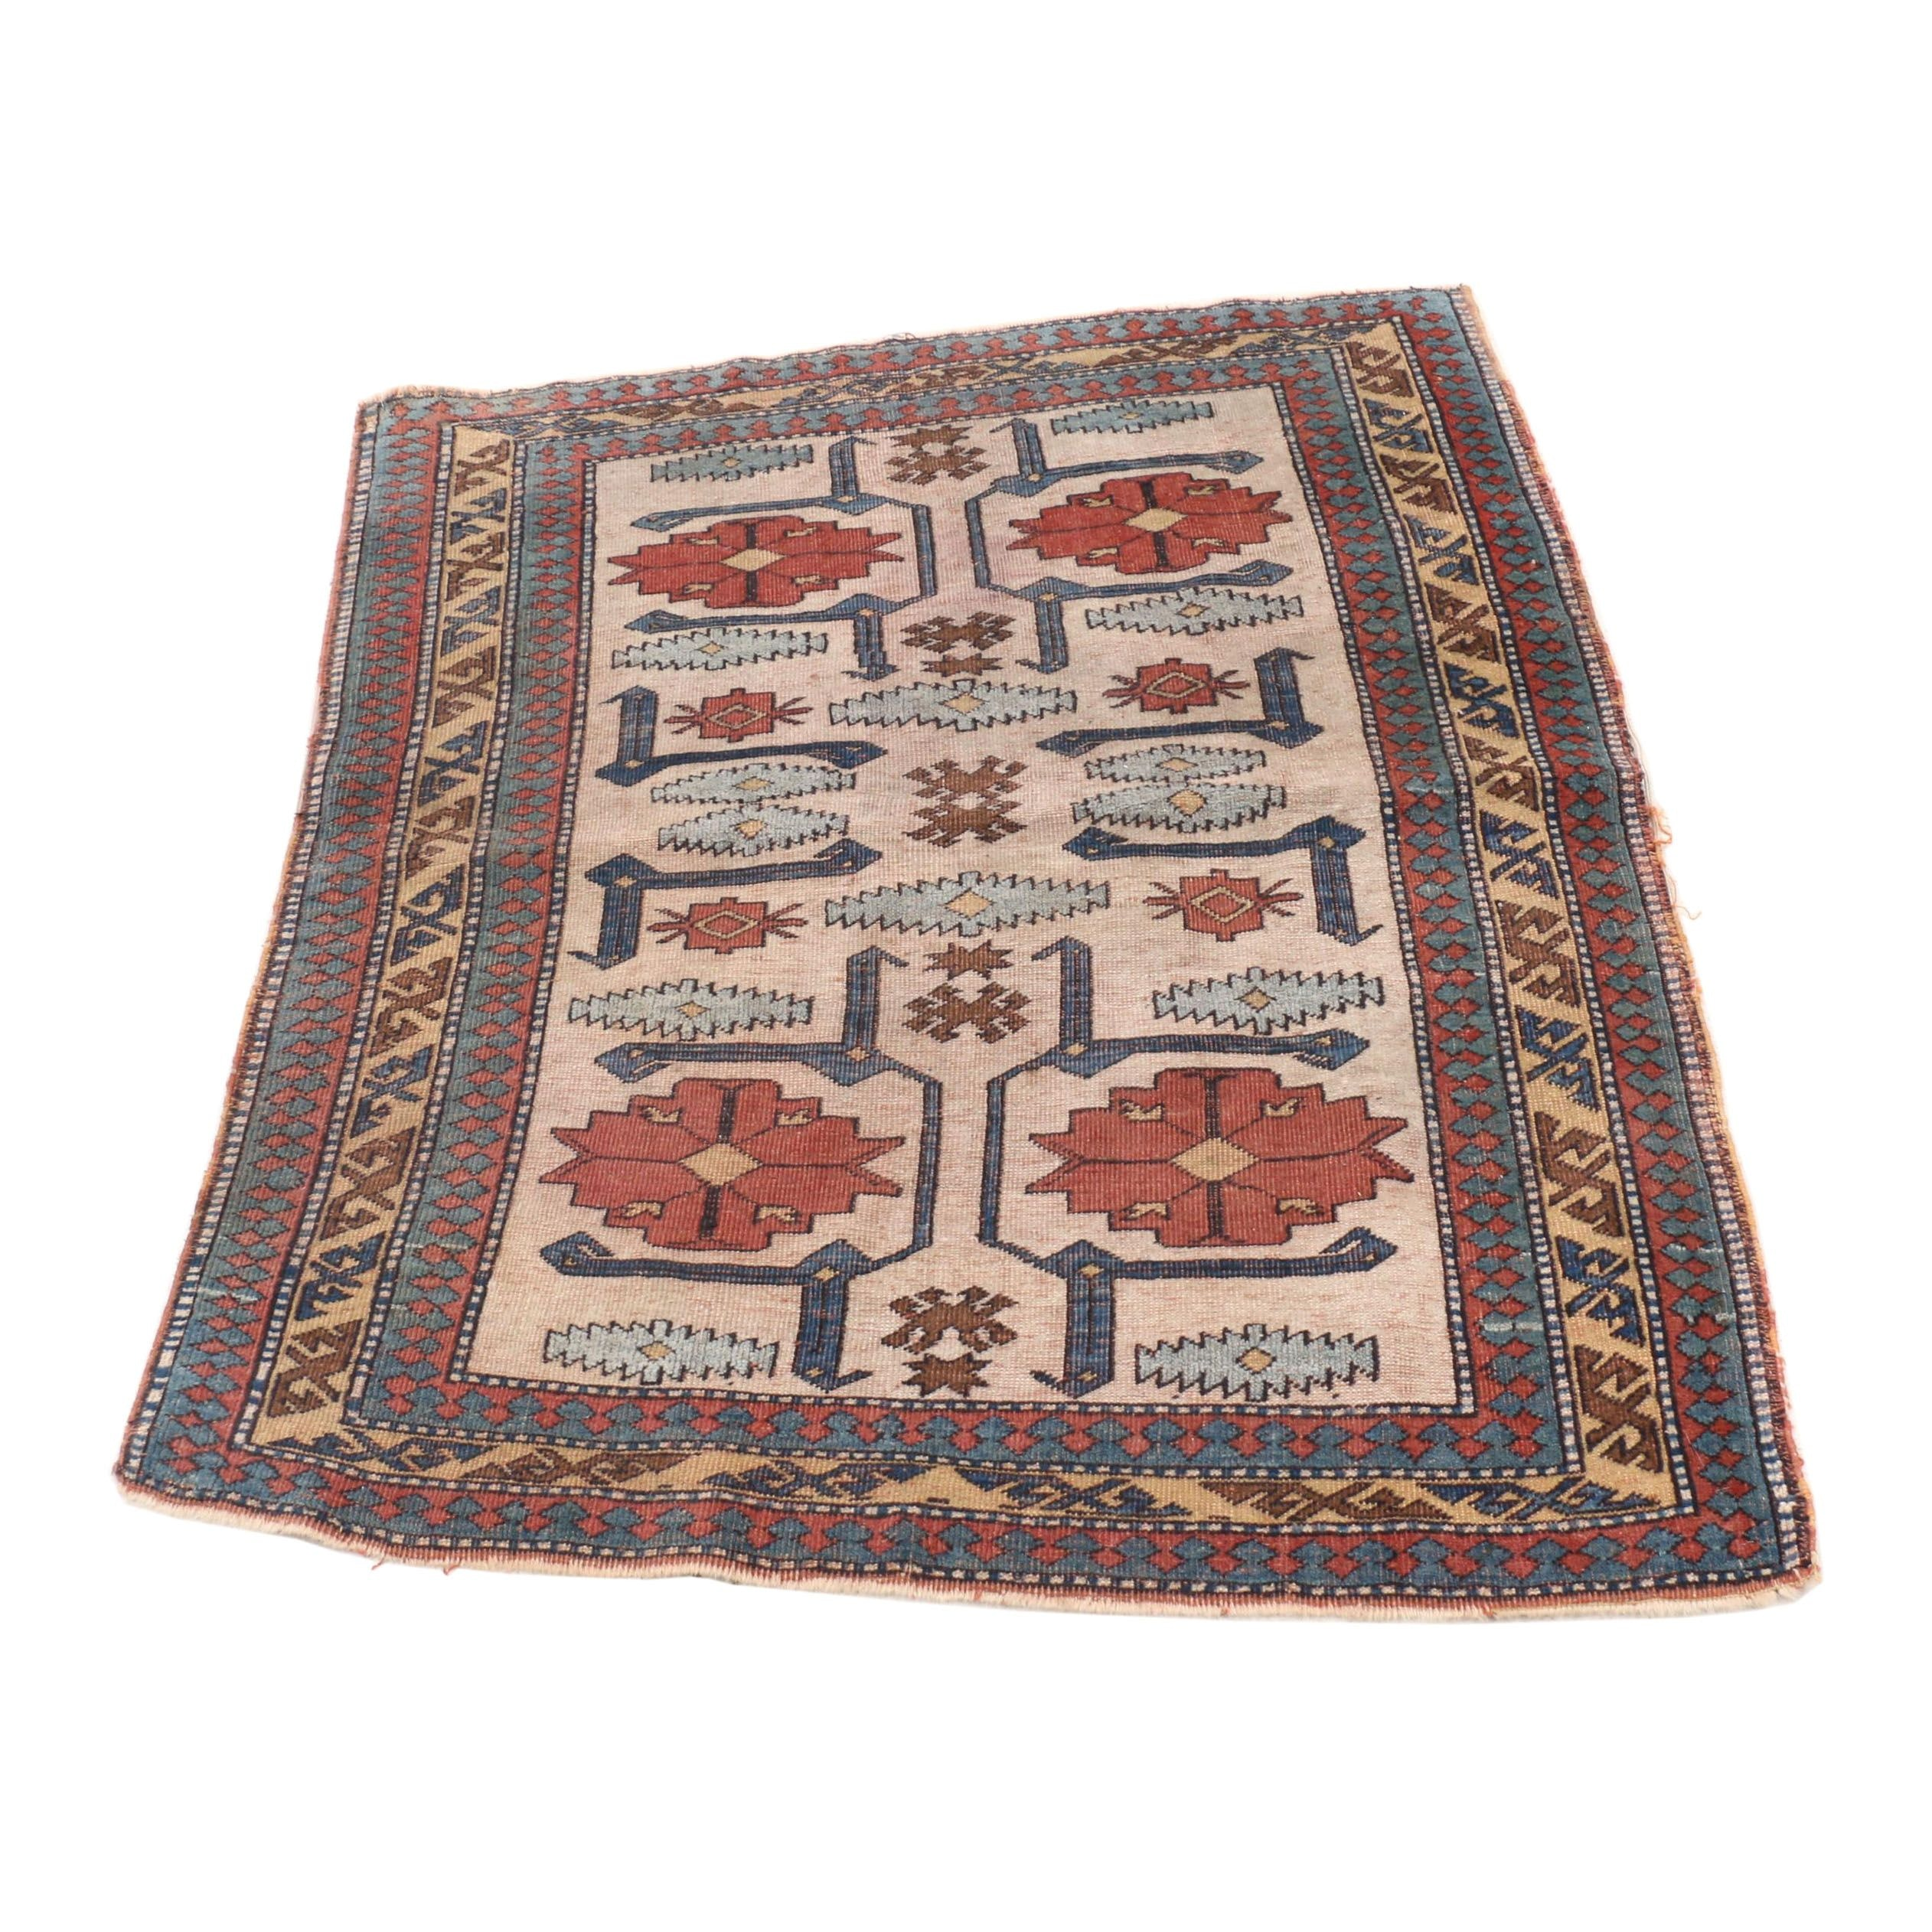 Hand-Knotted Caucasian Karabagh Wool Rug